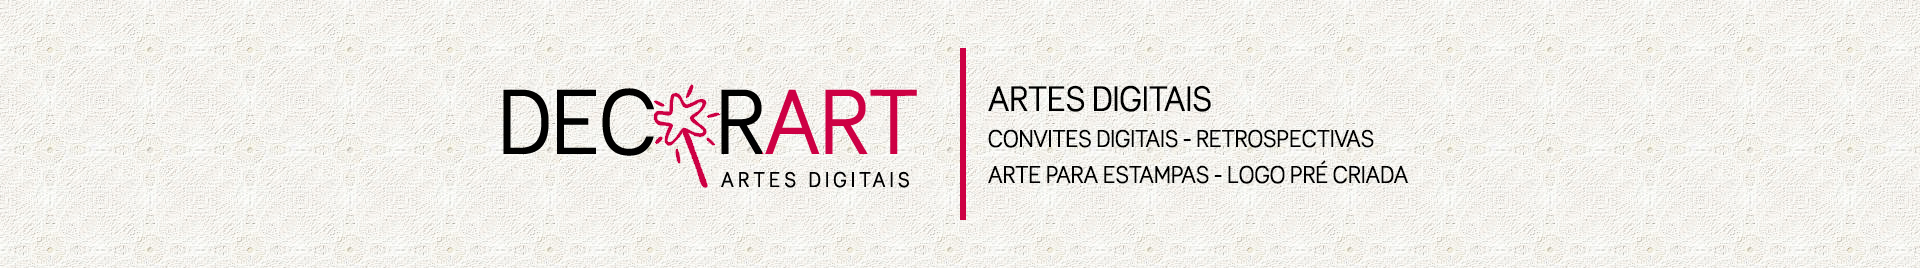 DecorART - Artes Digitais